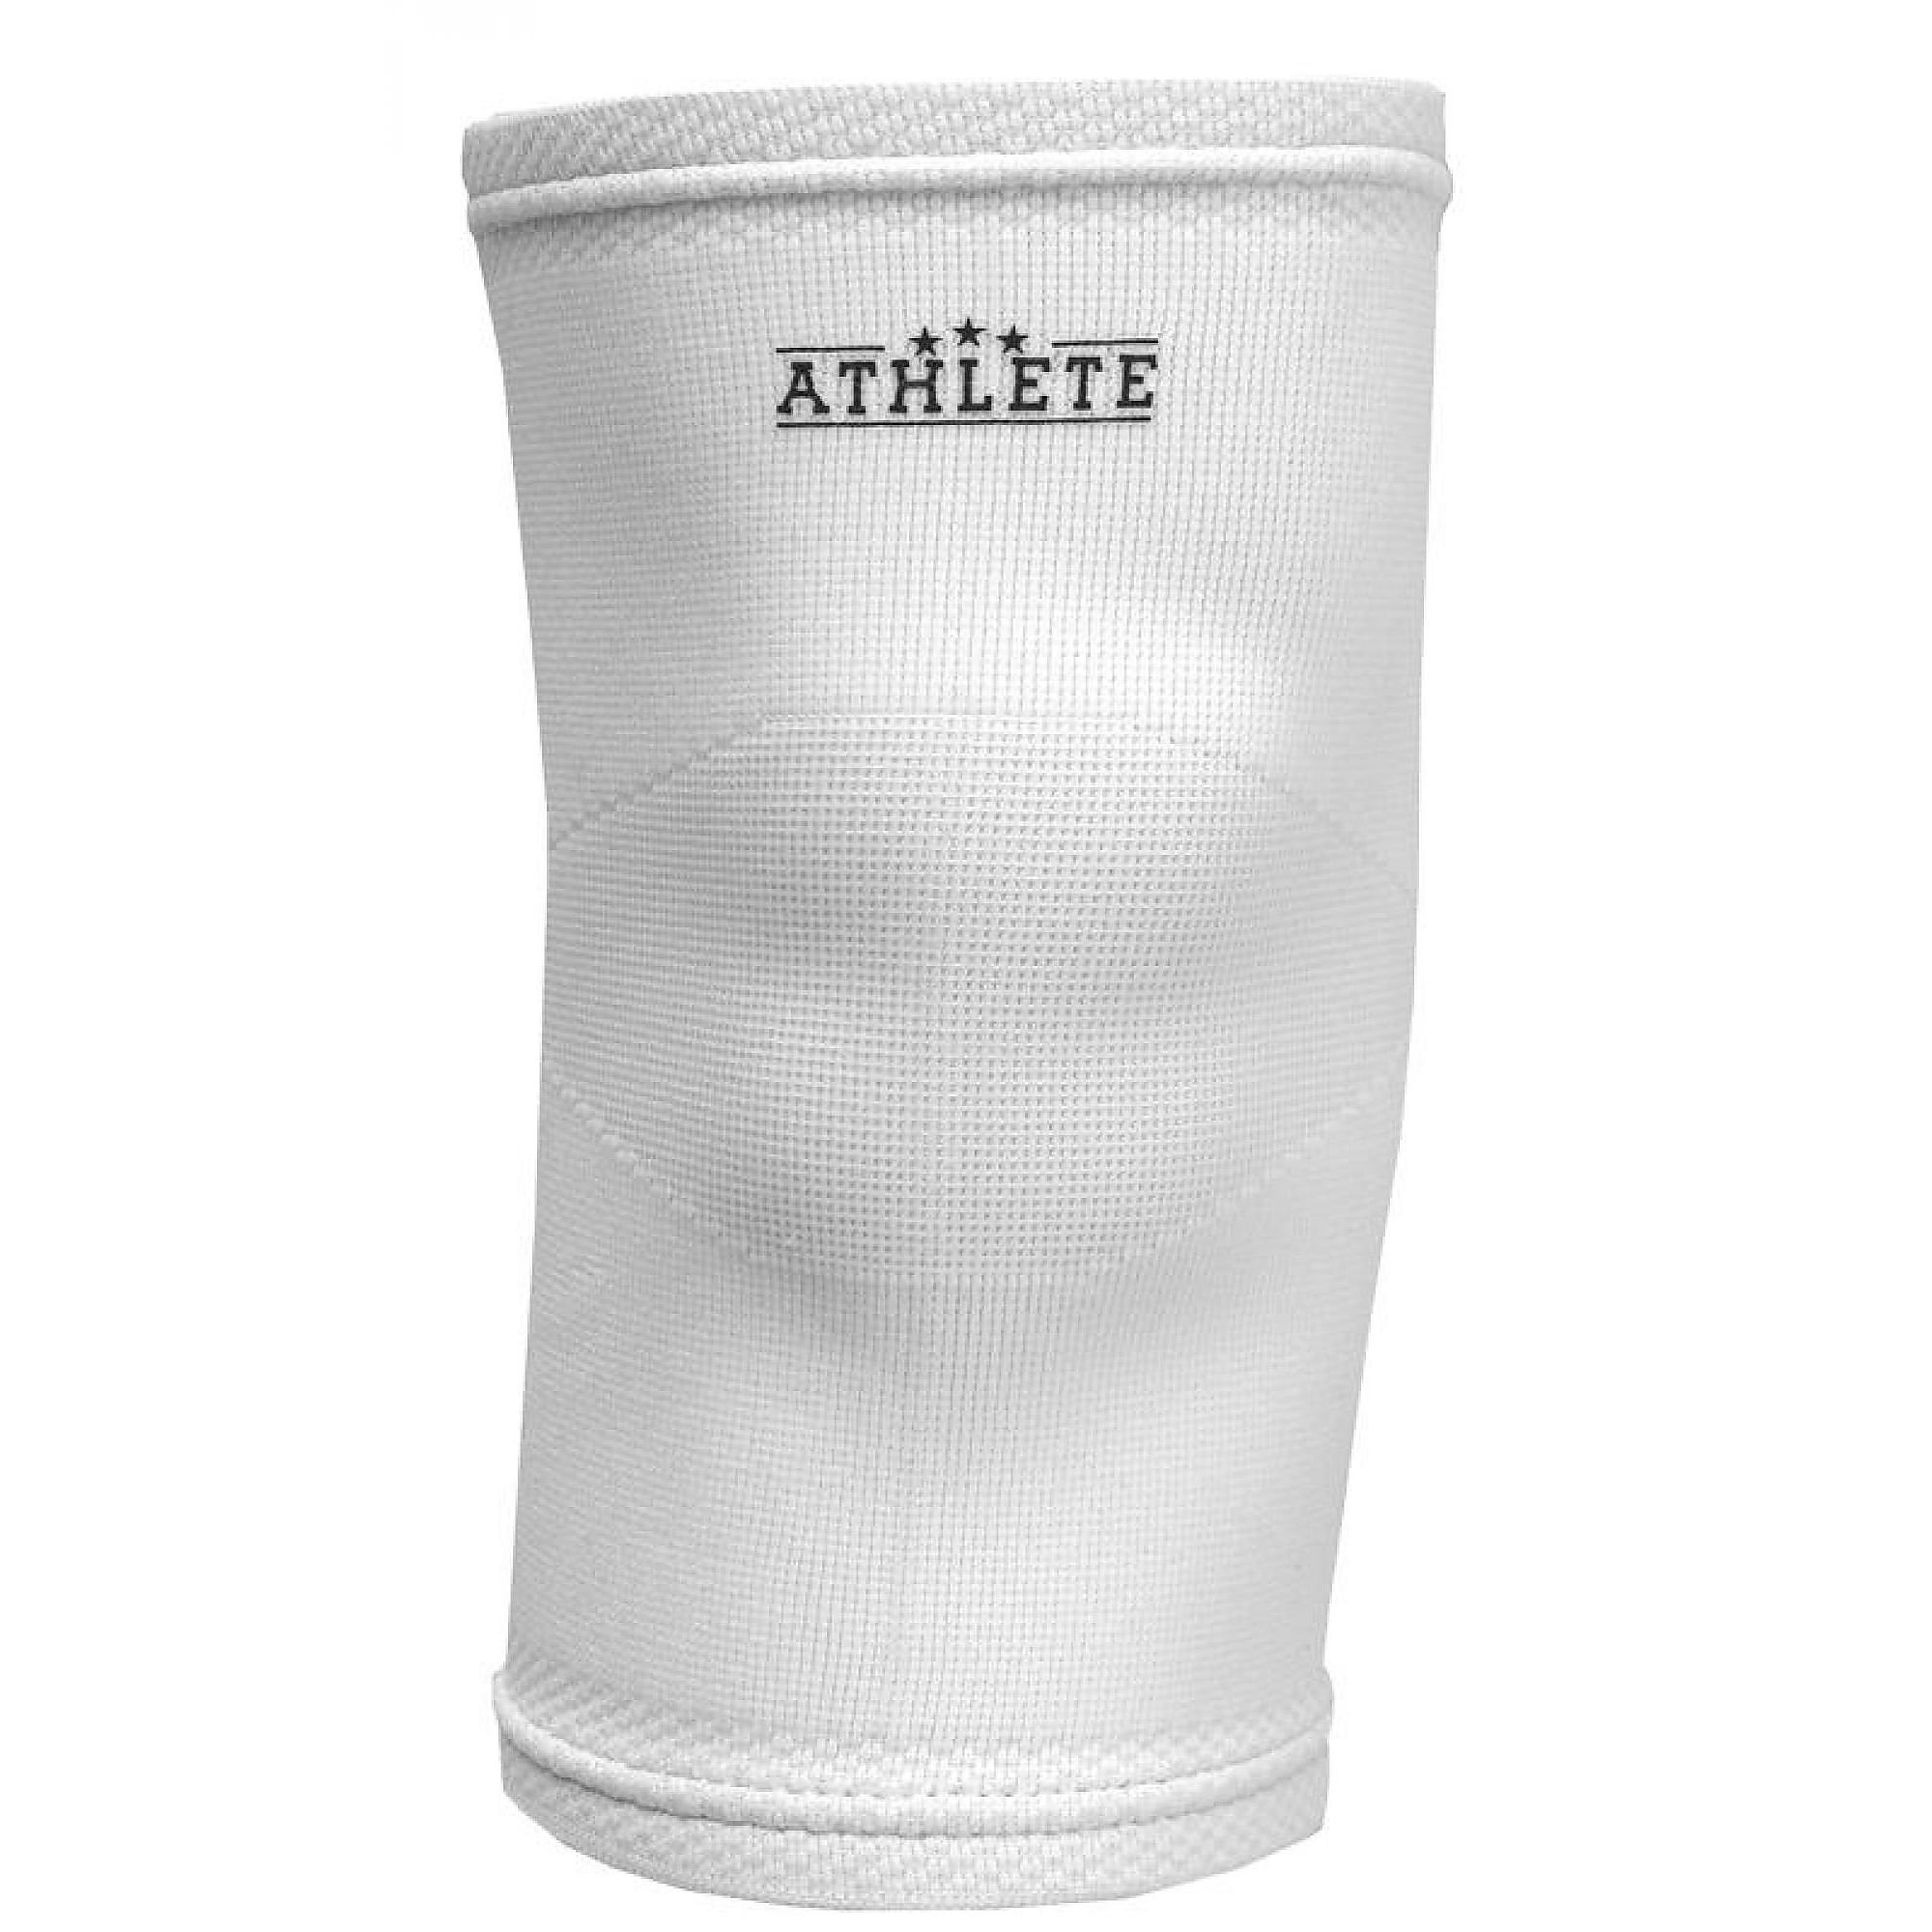 ATHLETE KNIEBAND WIT UNISEX